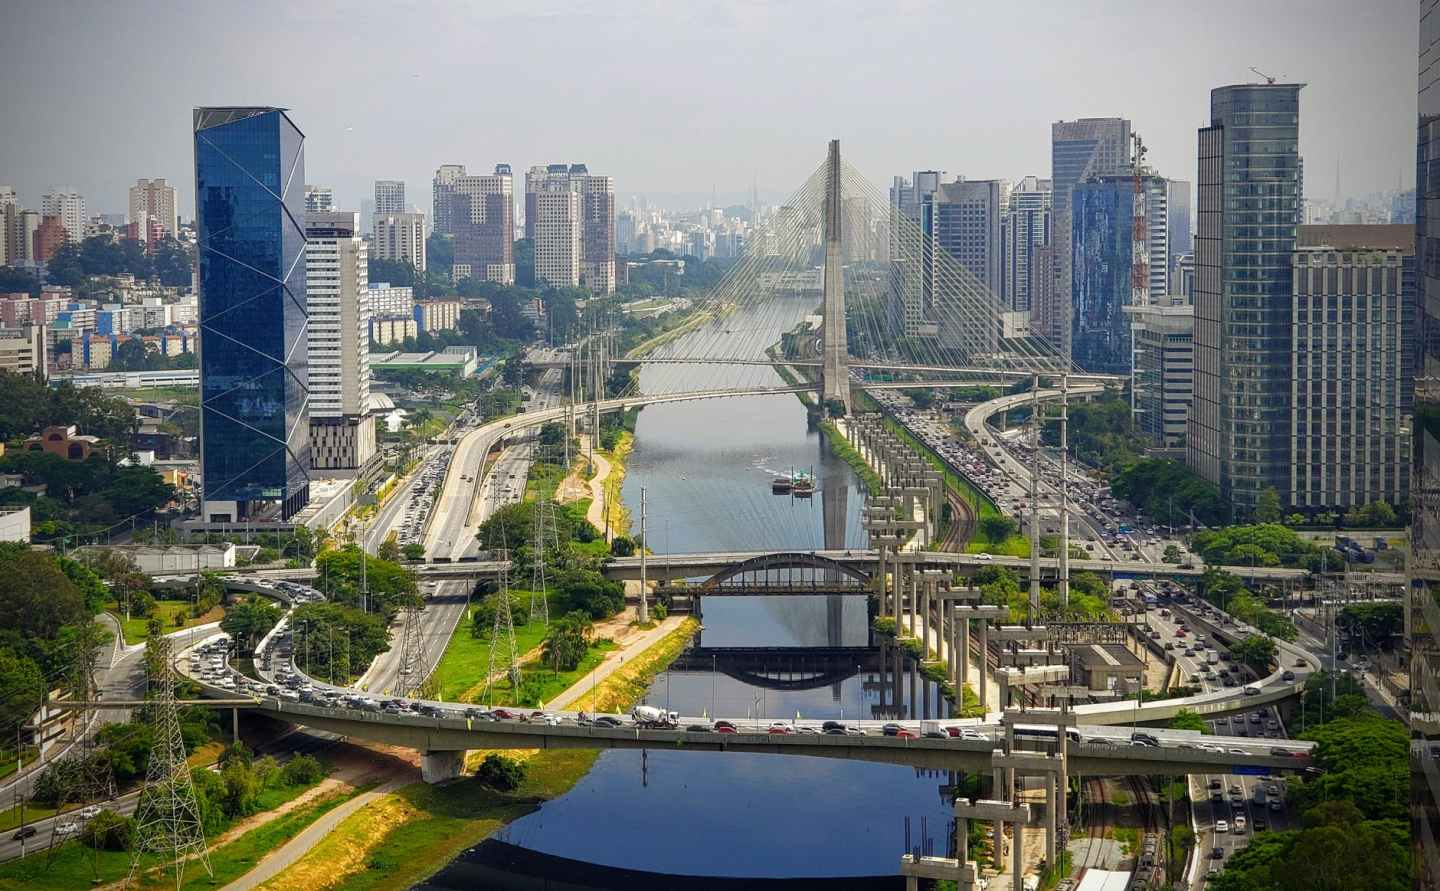 picturesque scenery of modern sao paulo district